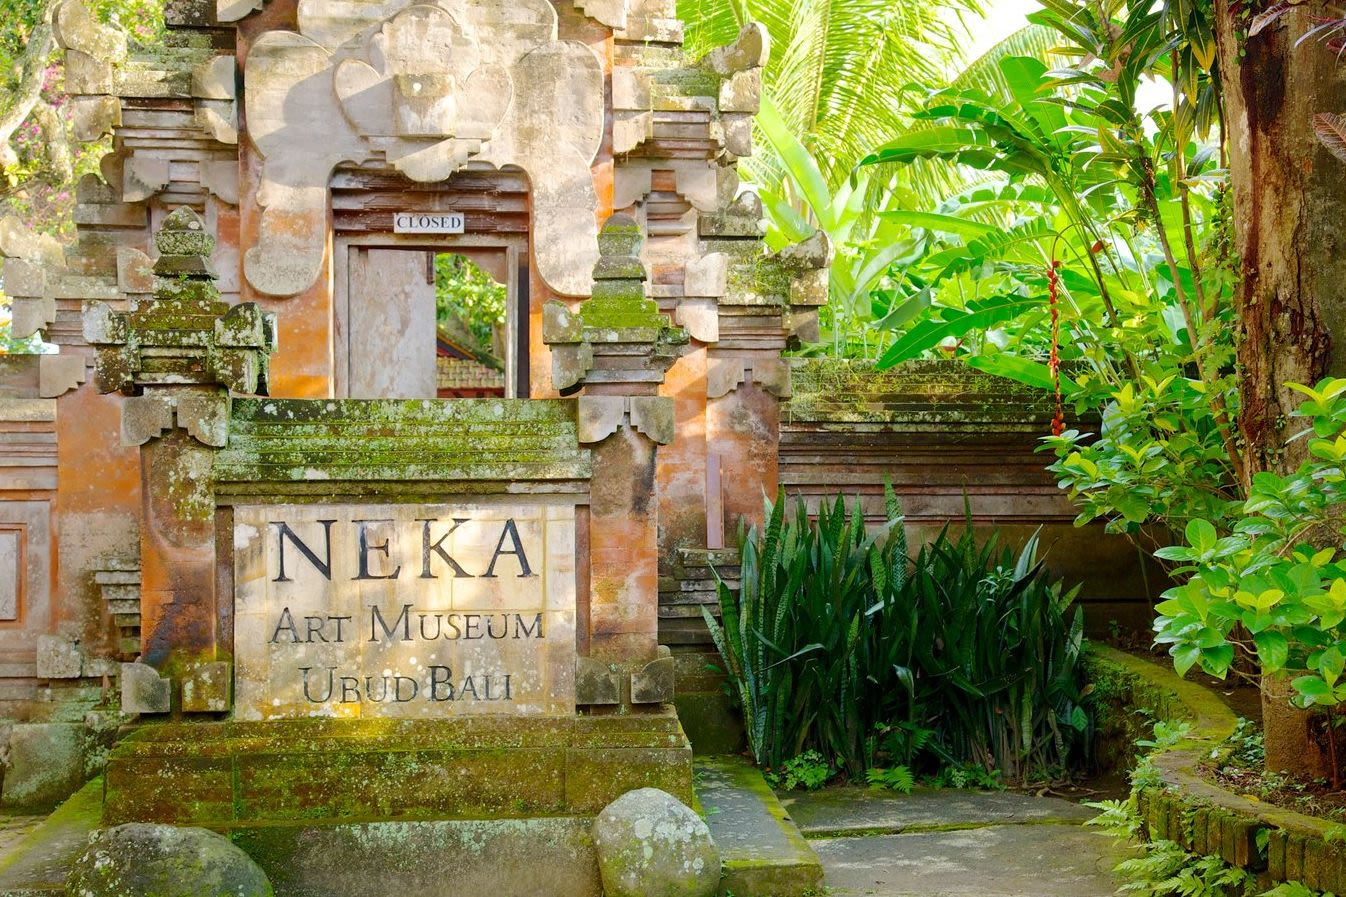 The Neka Art Museum in Ubud Bali